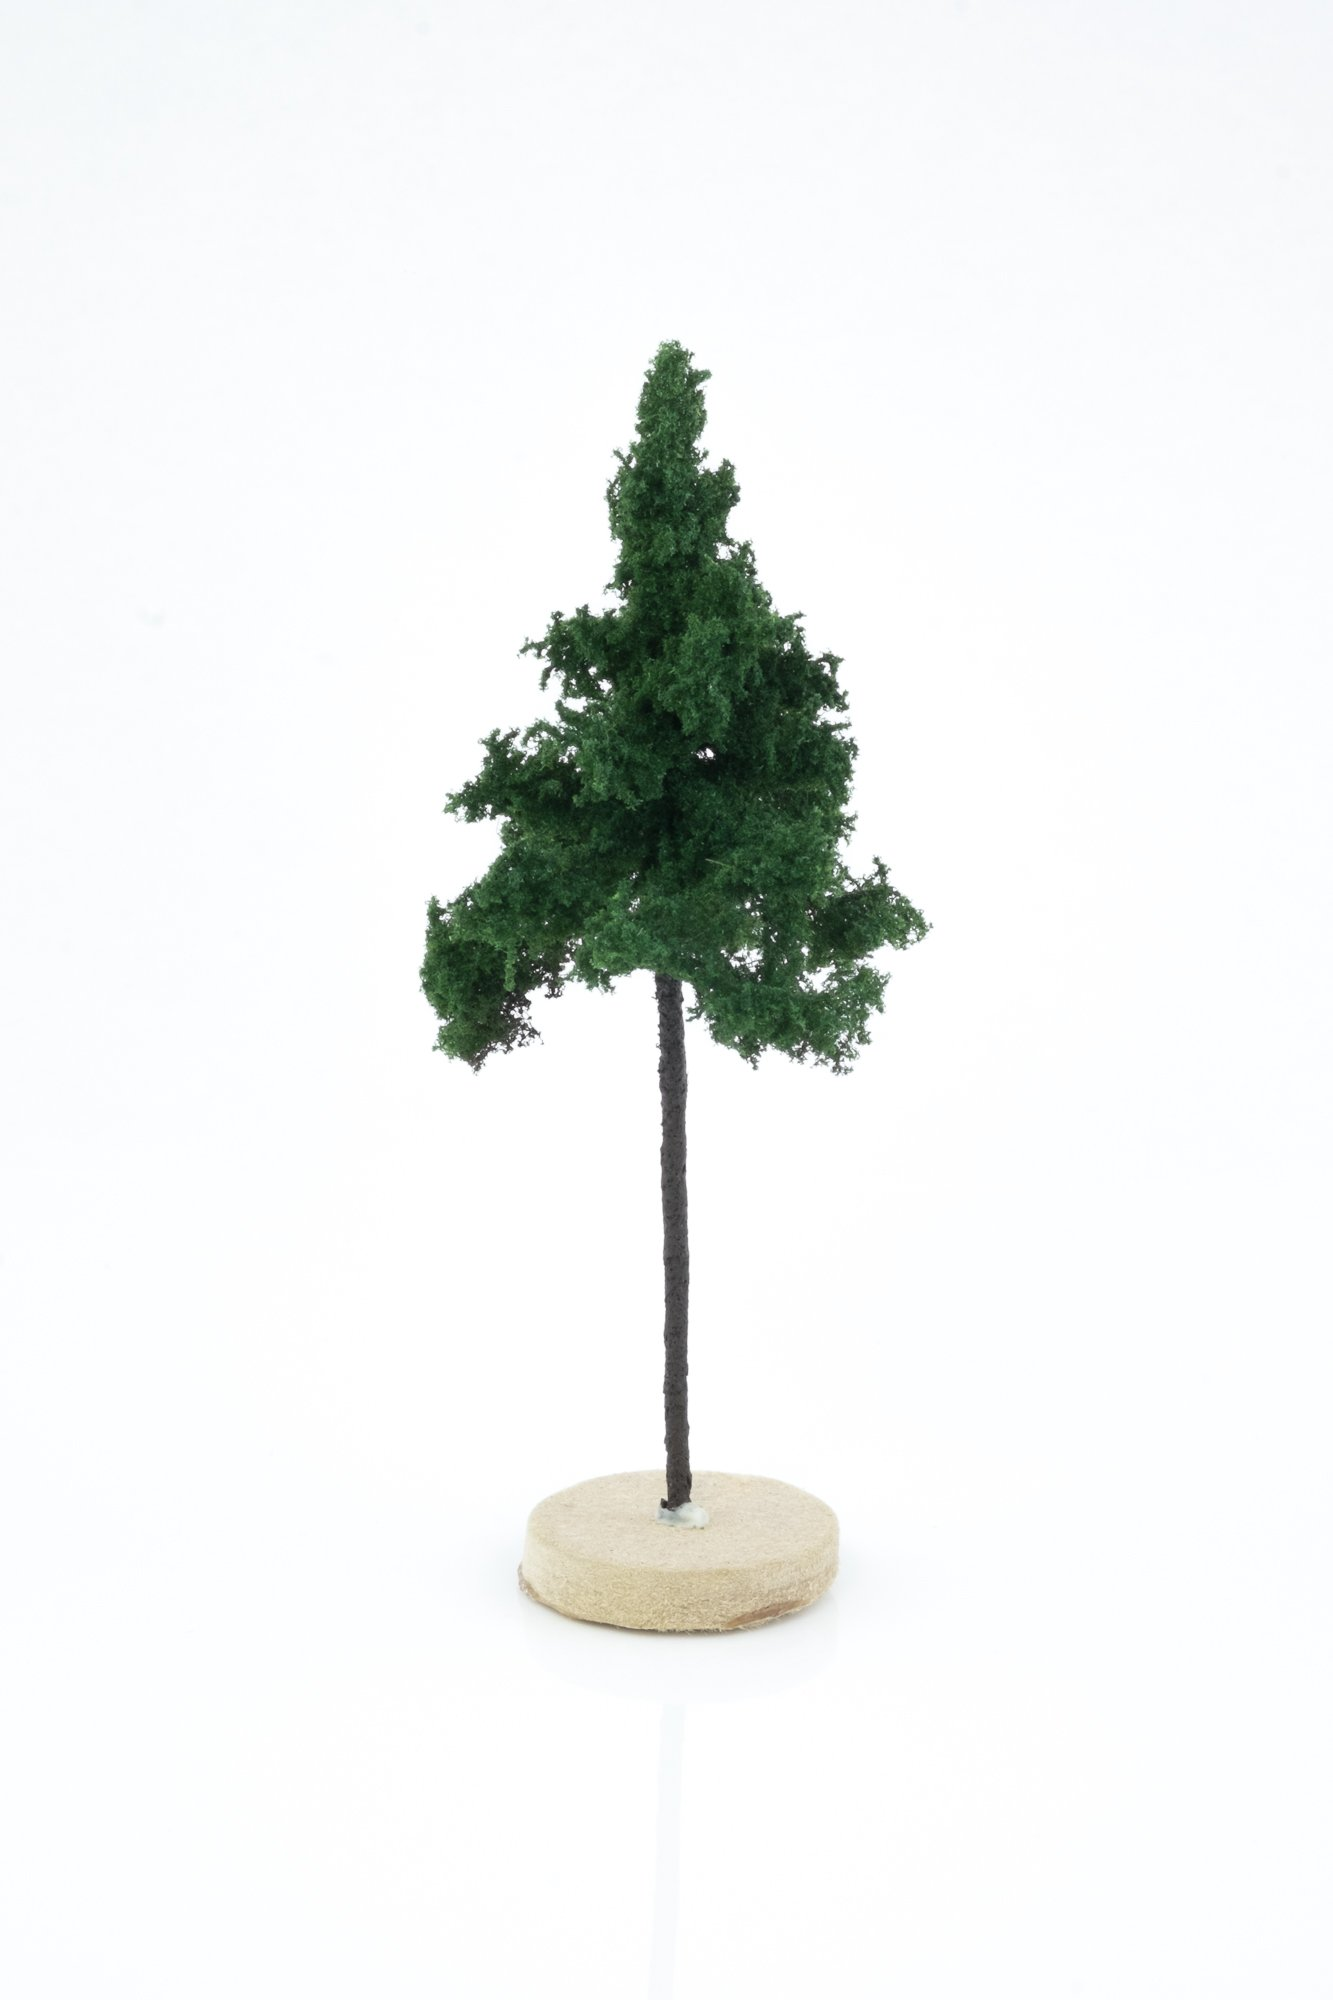 Hand-made, green, forest spruce tree model. Size between 8 and 12 cm. Made from high quality model supplies by Primo Models.